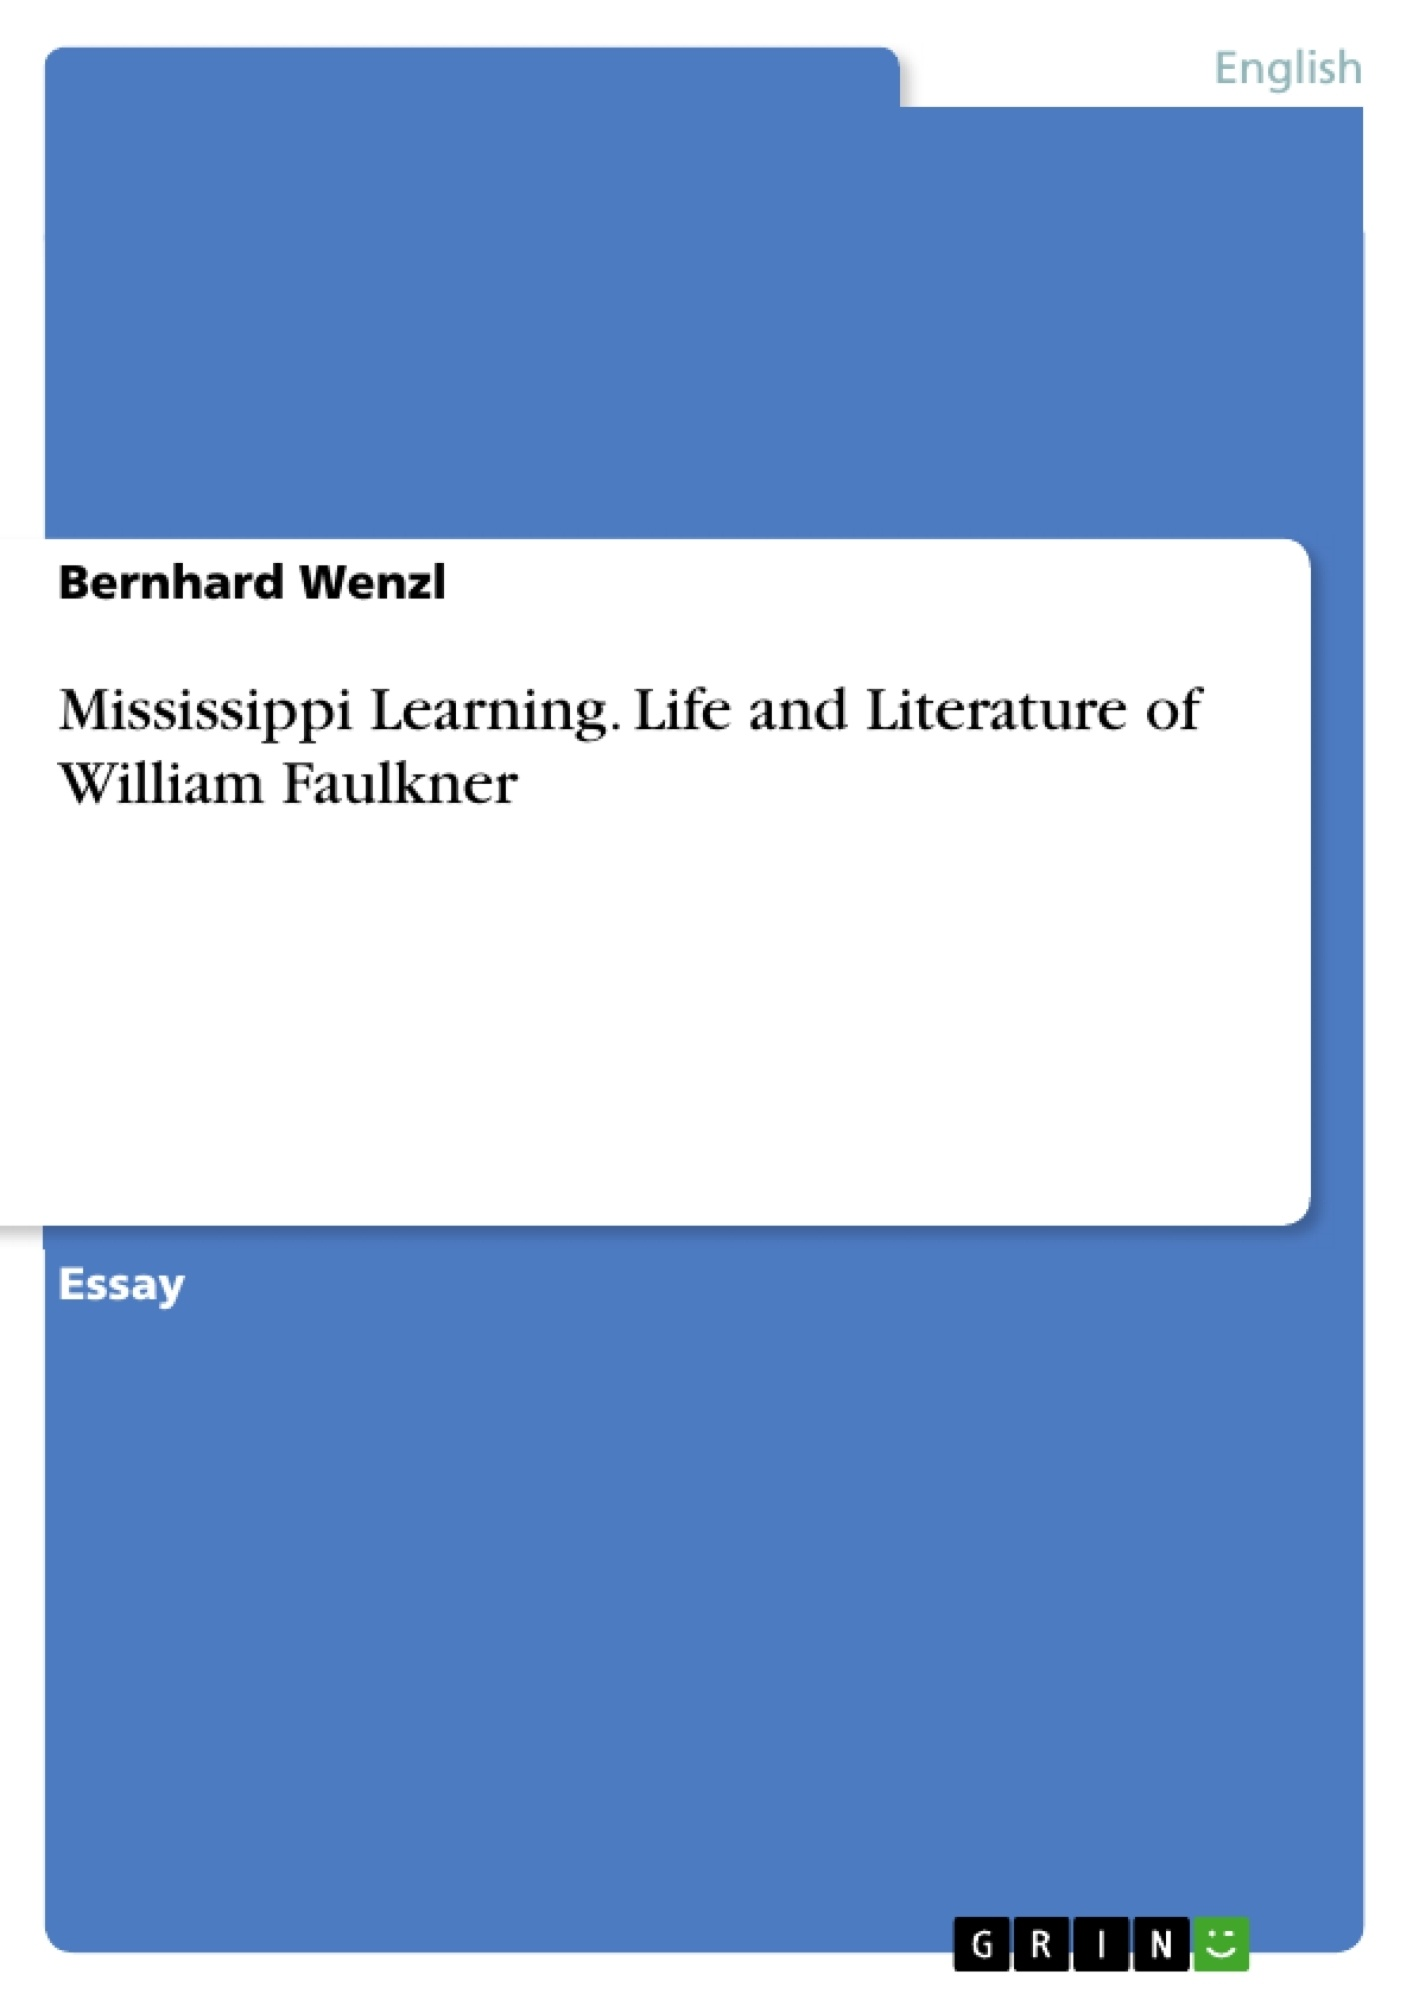 Title: Mississippi Learning. Life and Literature of William Faulkner